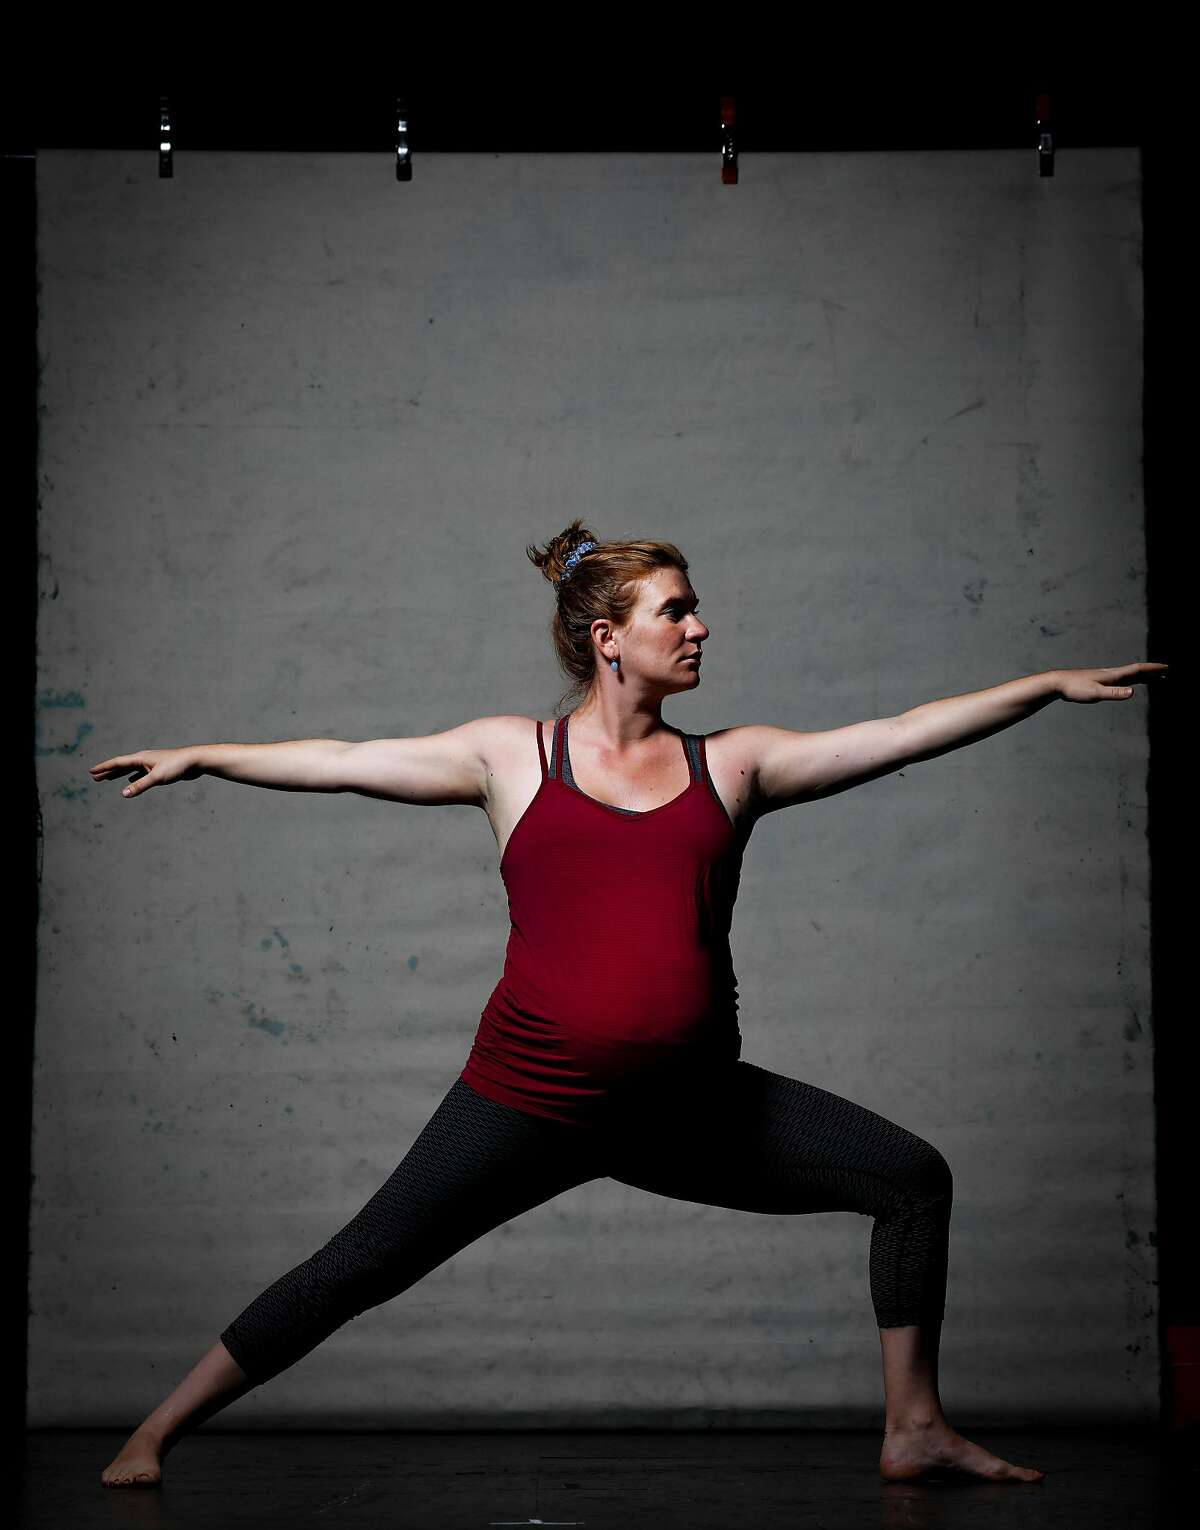 Charlotte Bruce-Byrne, who has been practicing yoga at Yoga Tree with Jane Austin, strikes the extended side angle pose on Thursday, Sept. 12, 2019 in San Francisco, Calif.